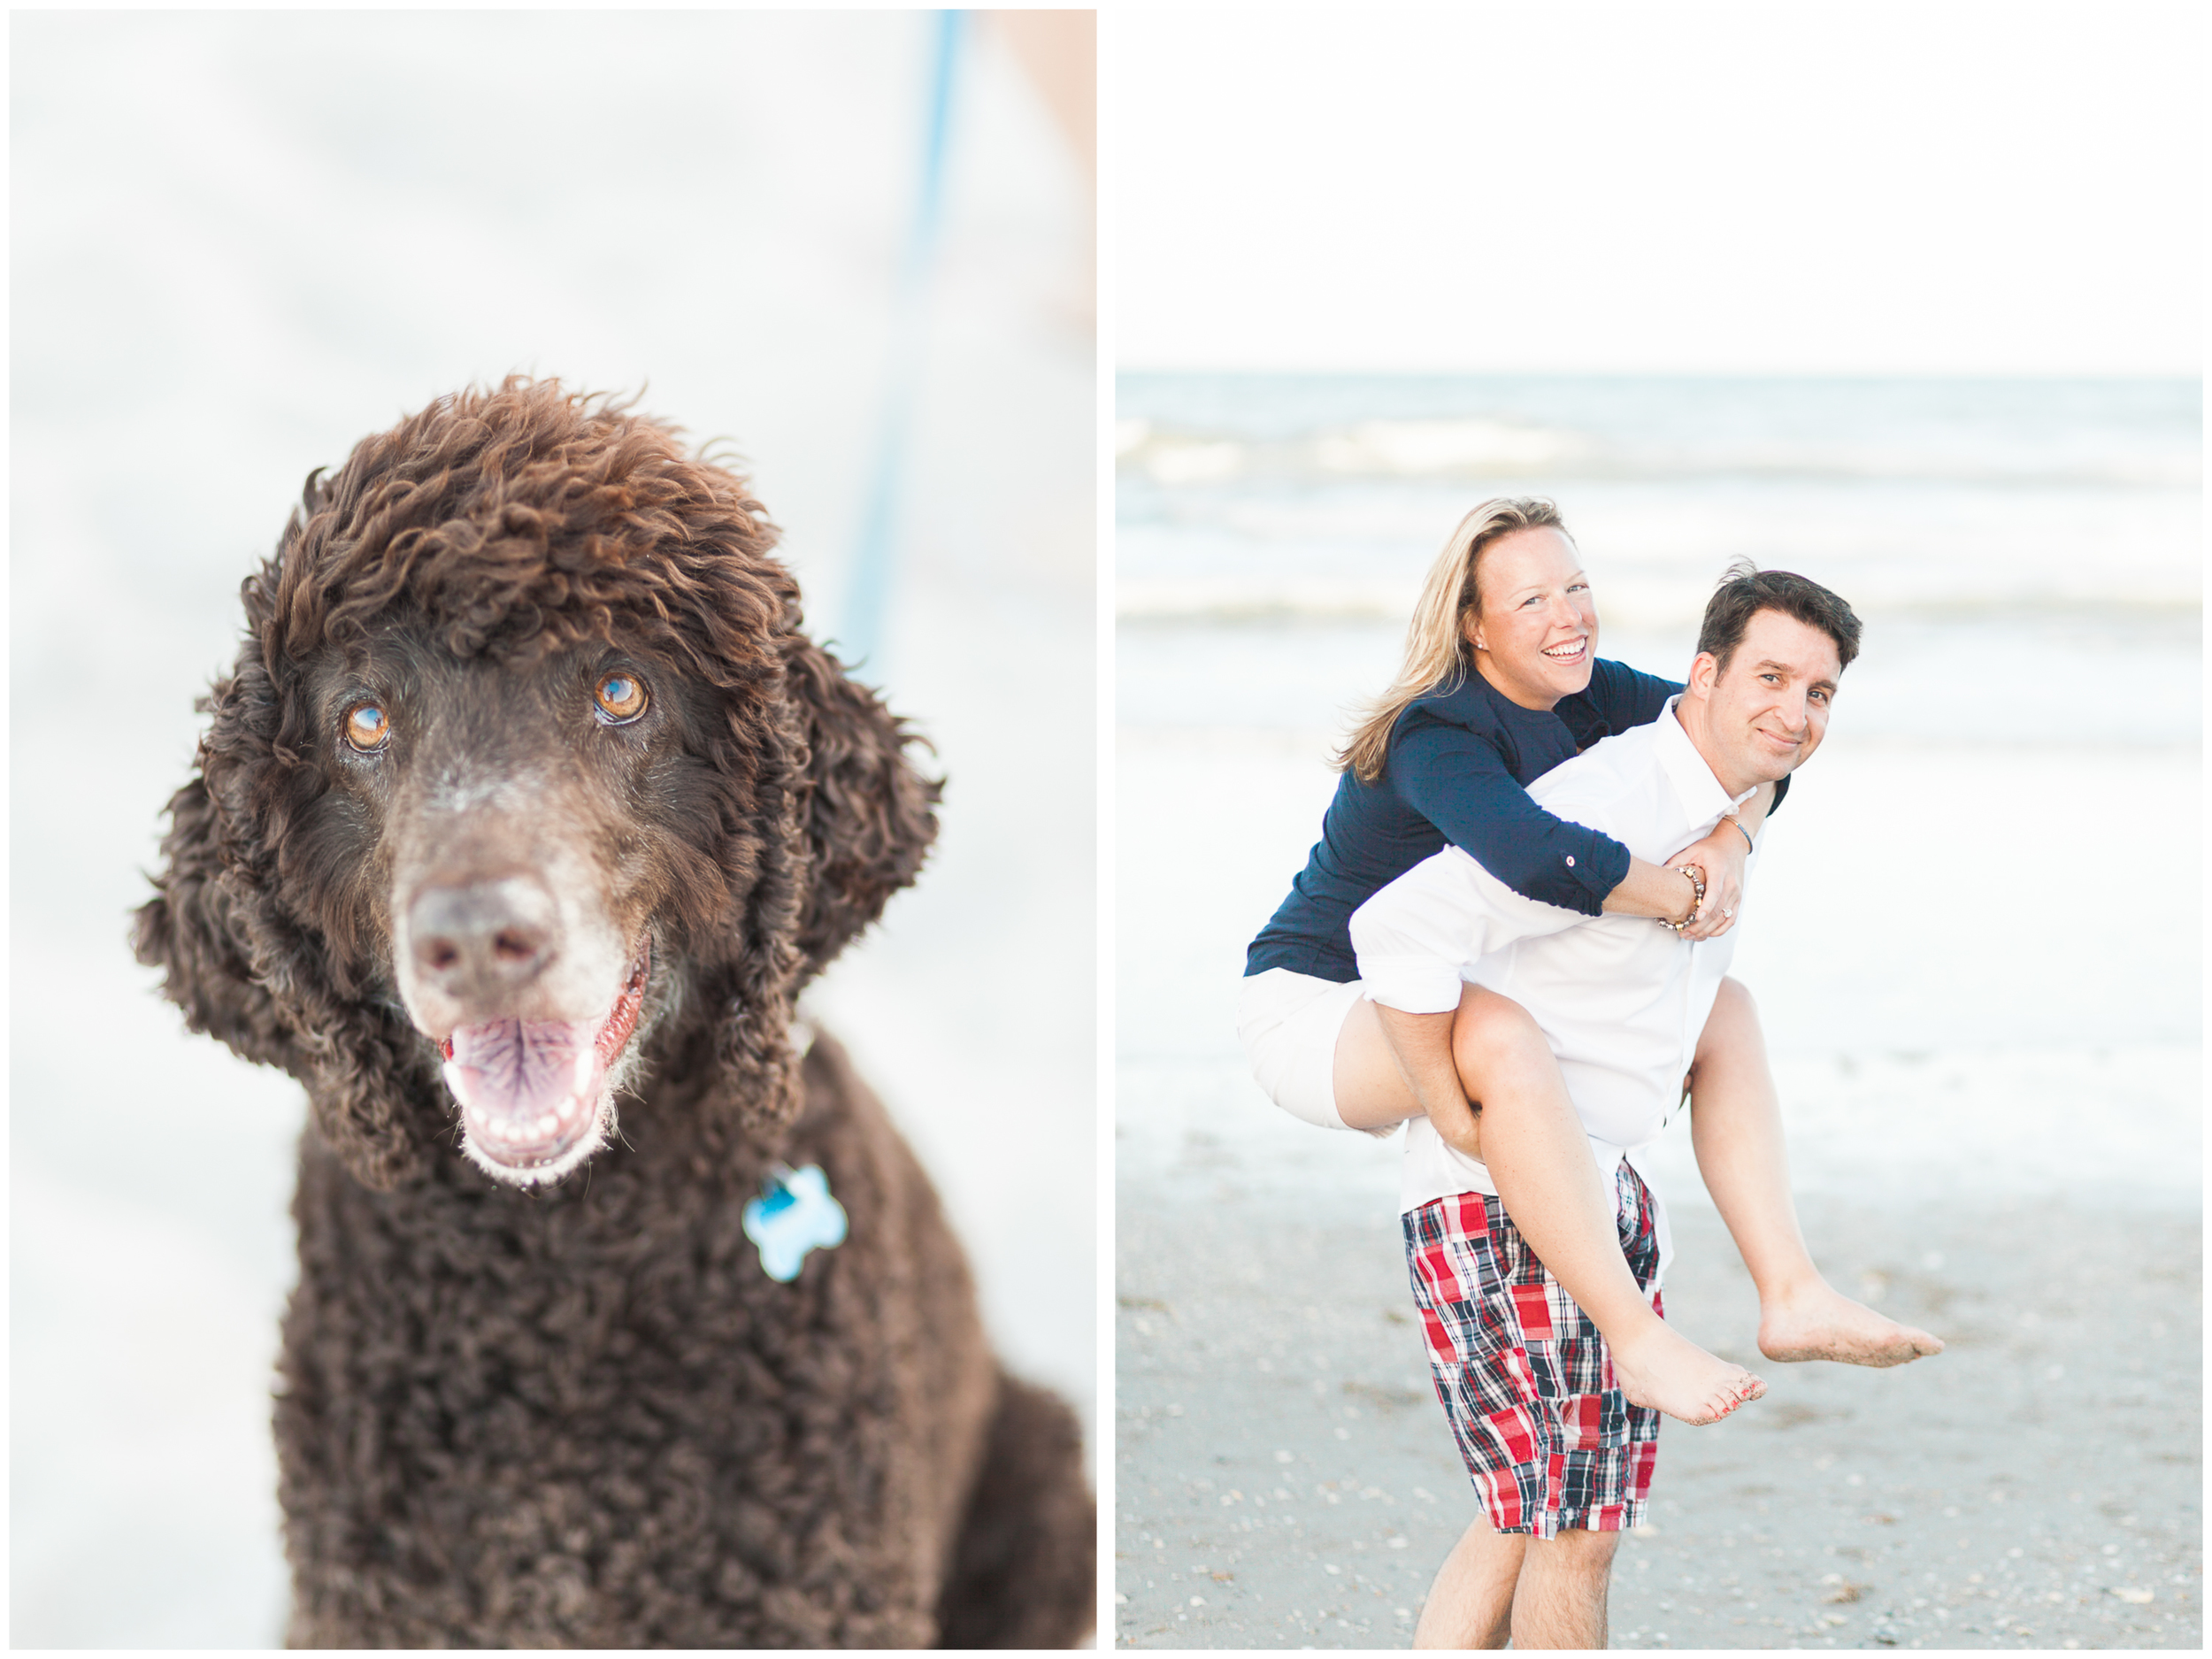 Chris and Paige's Engagement Session | Pelican Beach Park, Melbourne, Florida | Michelle Mock Photography